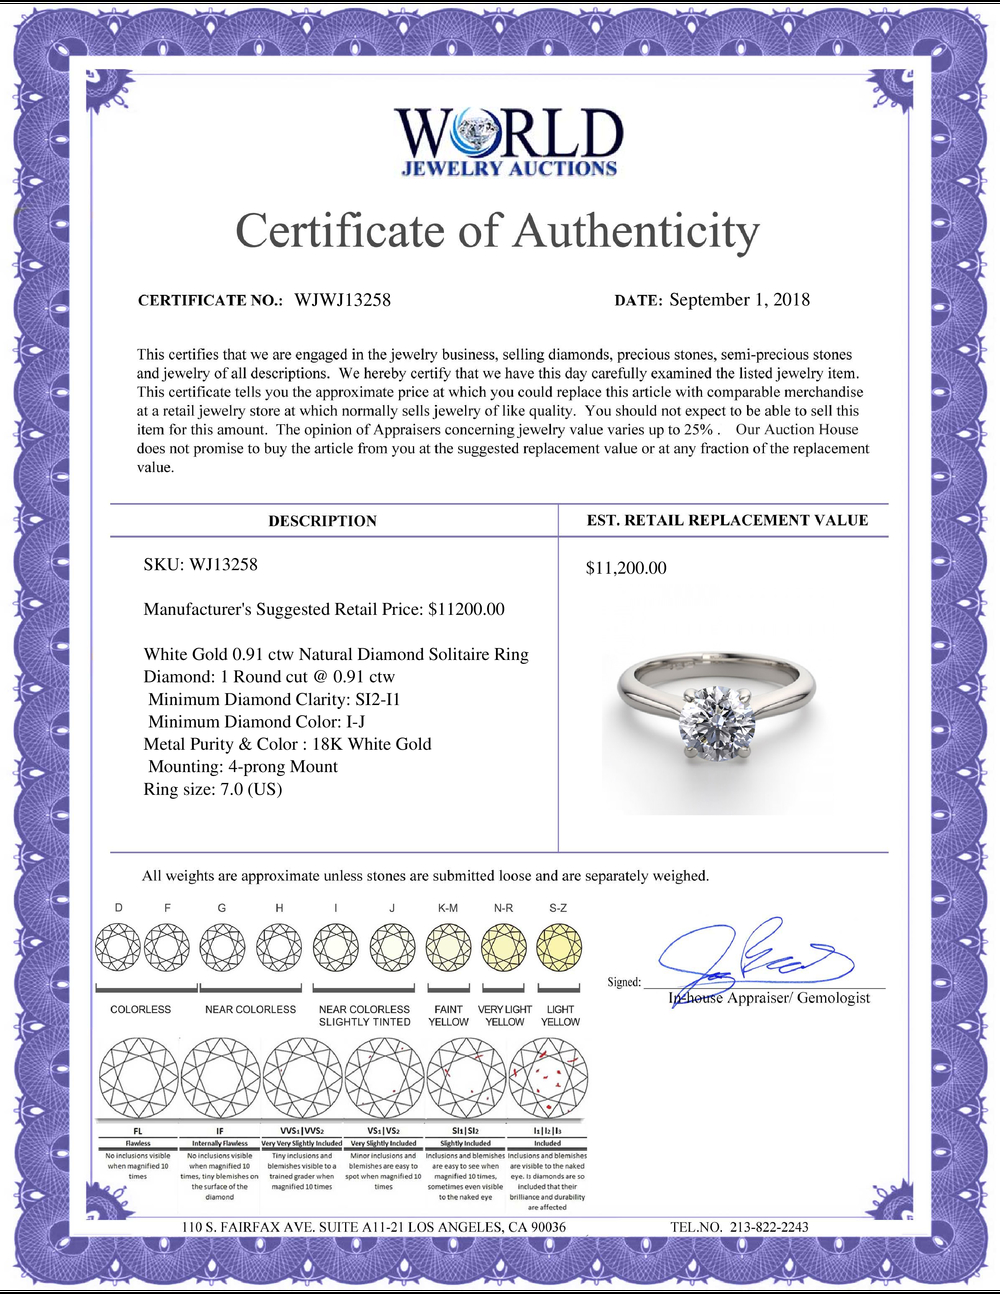 Lot 3138: 18K White Gold 0.91 ctw Natural Diamond Solitaire Ring - REF-263R2M-WJ13258